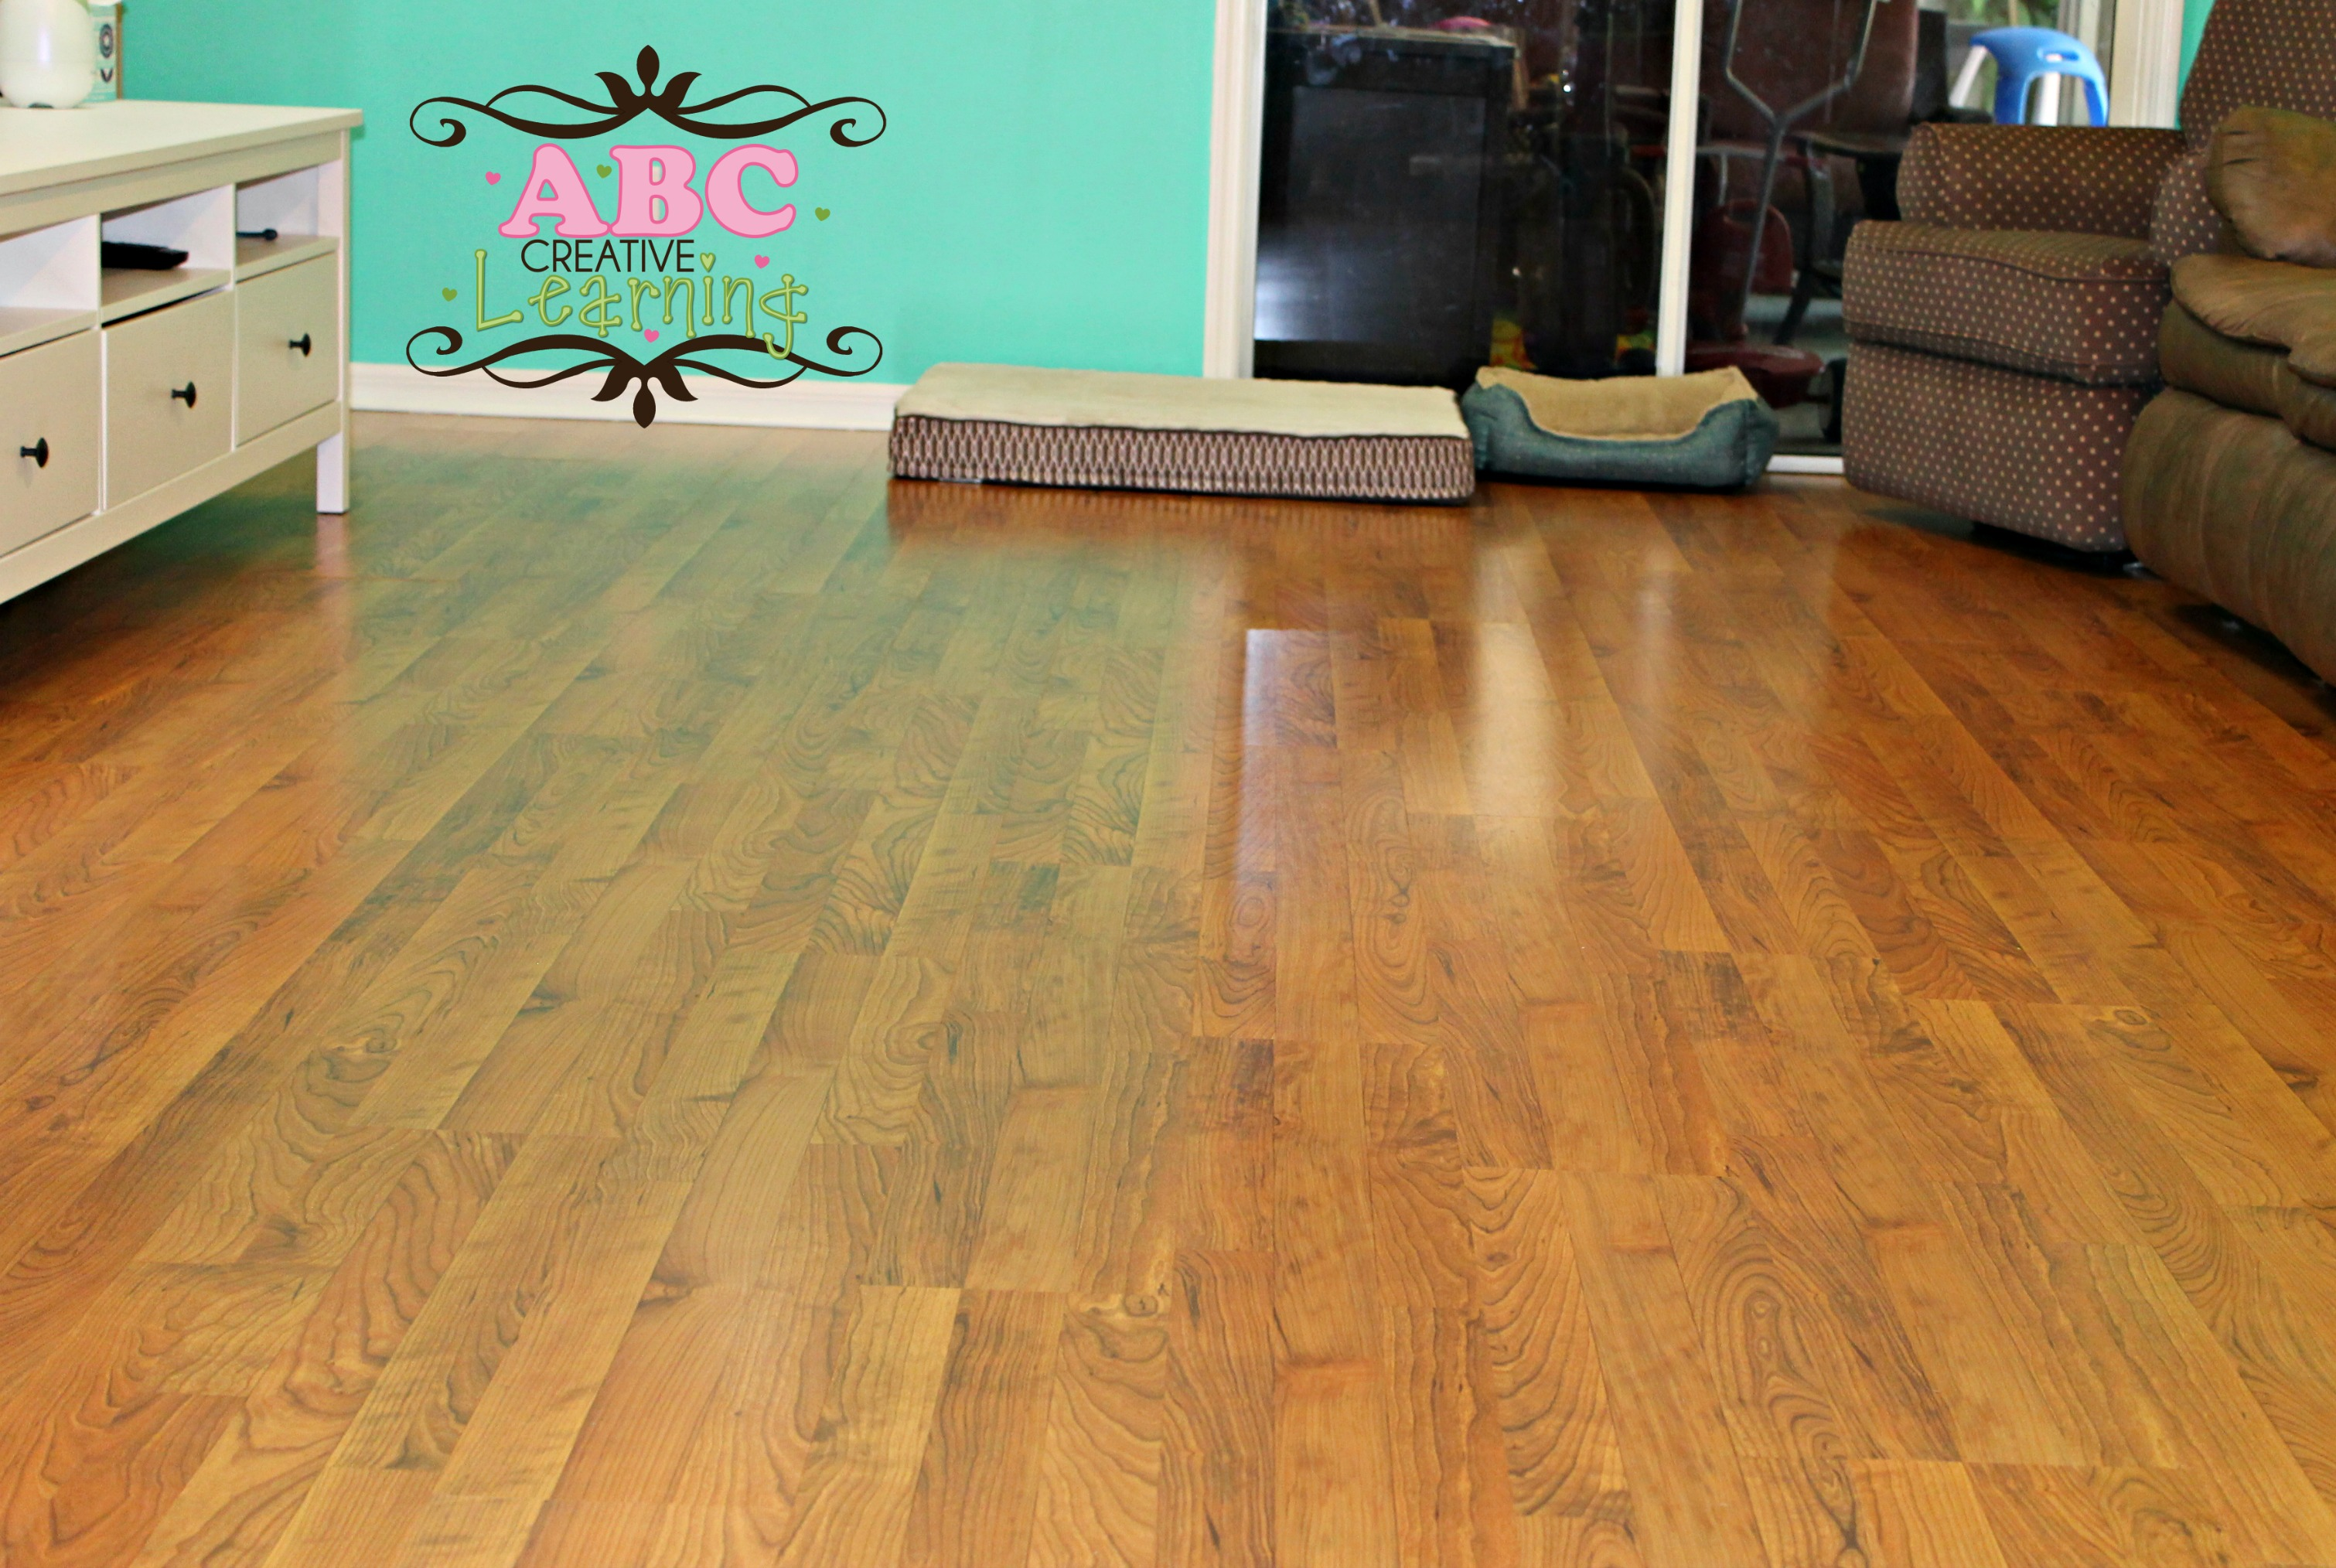 Cleaning Laminate Floors With Vinegar image titled clean laminate floors step 8 Naturally Clean Laminate Floors